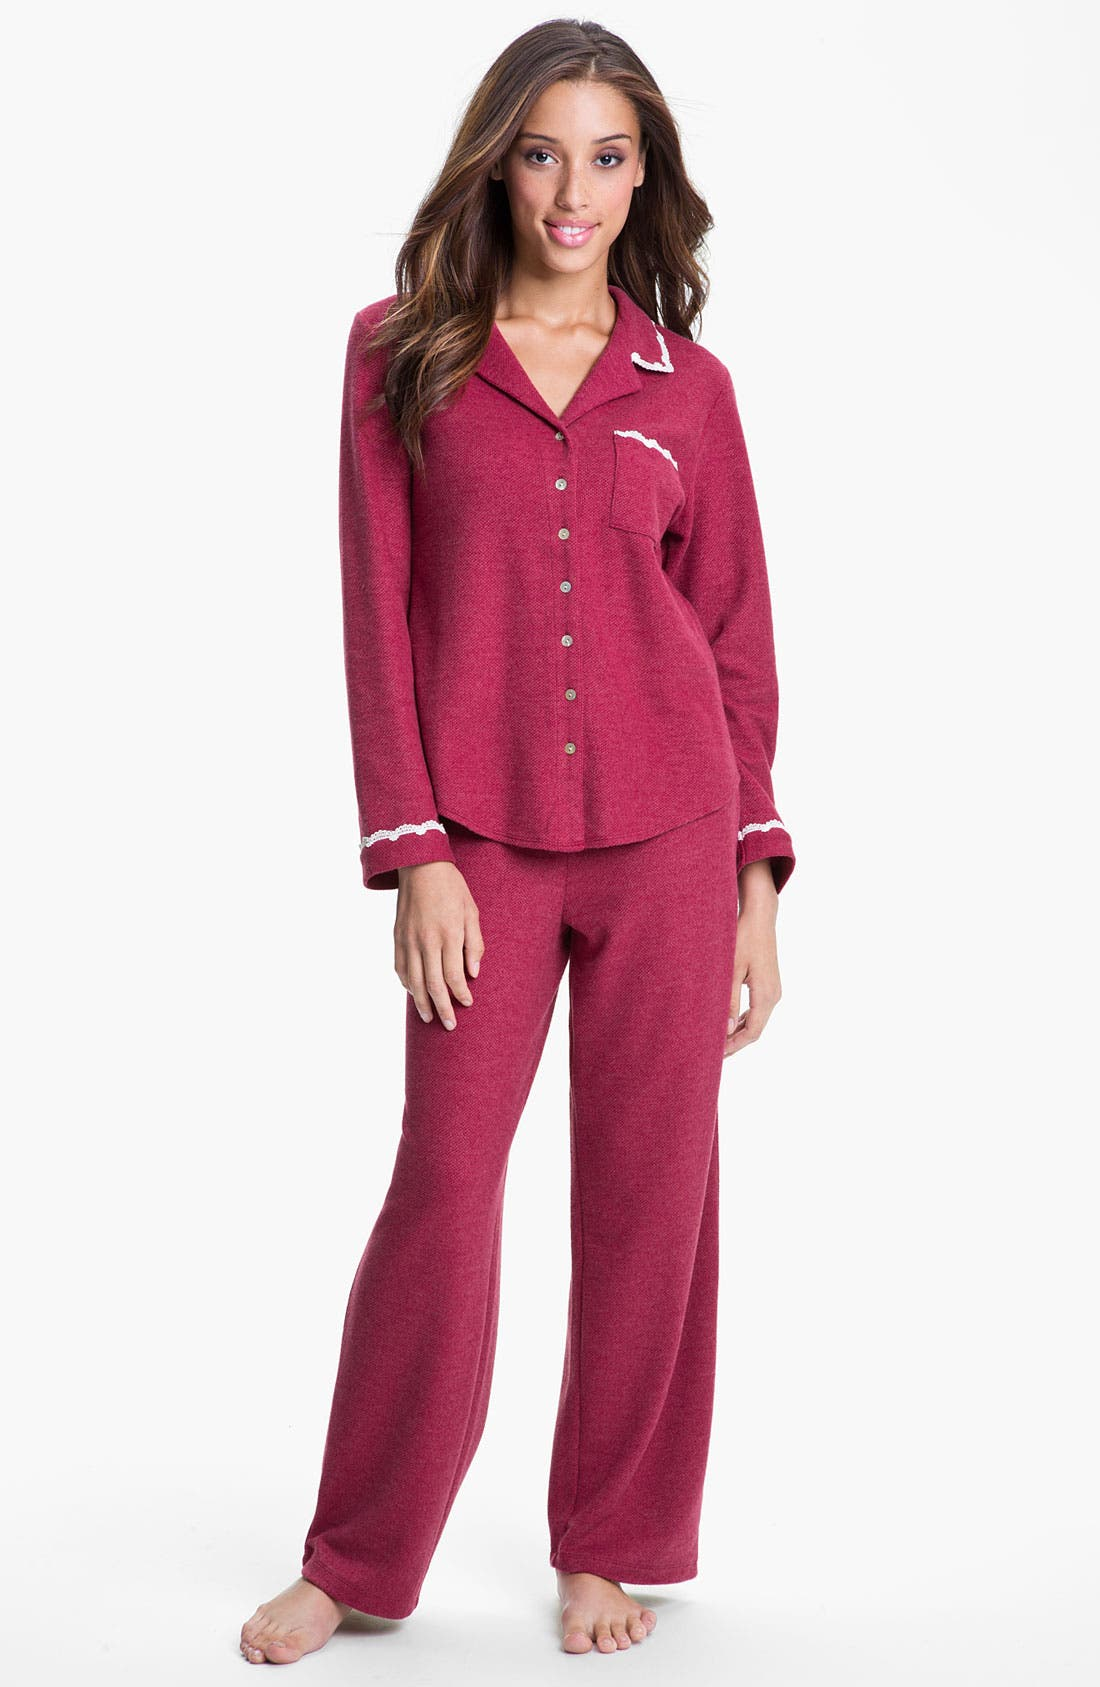 Main Image - Eileen West 'Winter Star' Thermal Pajamas